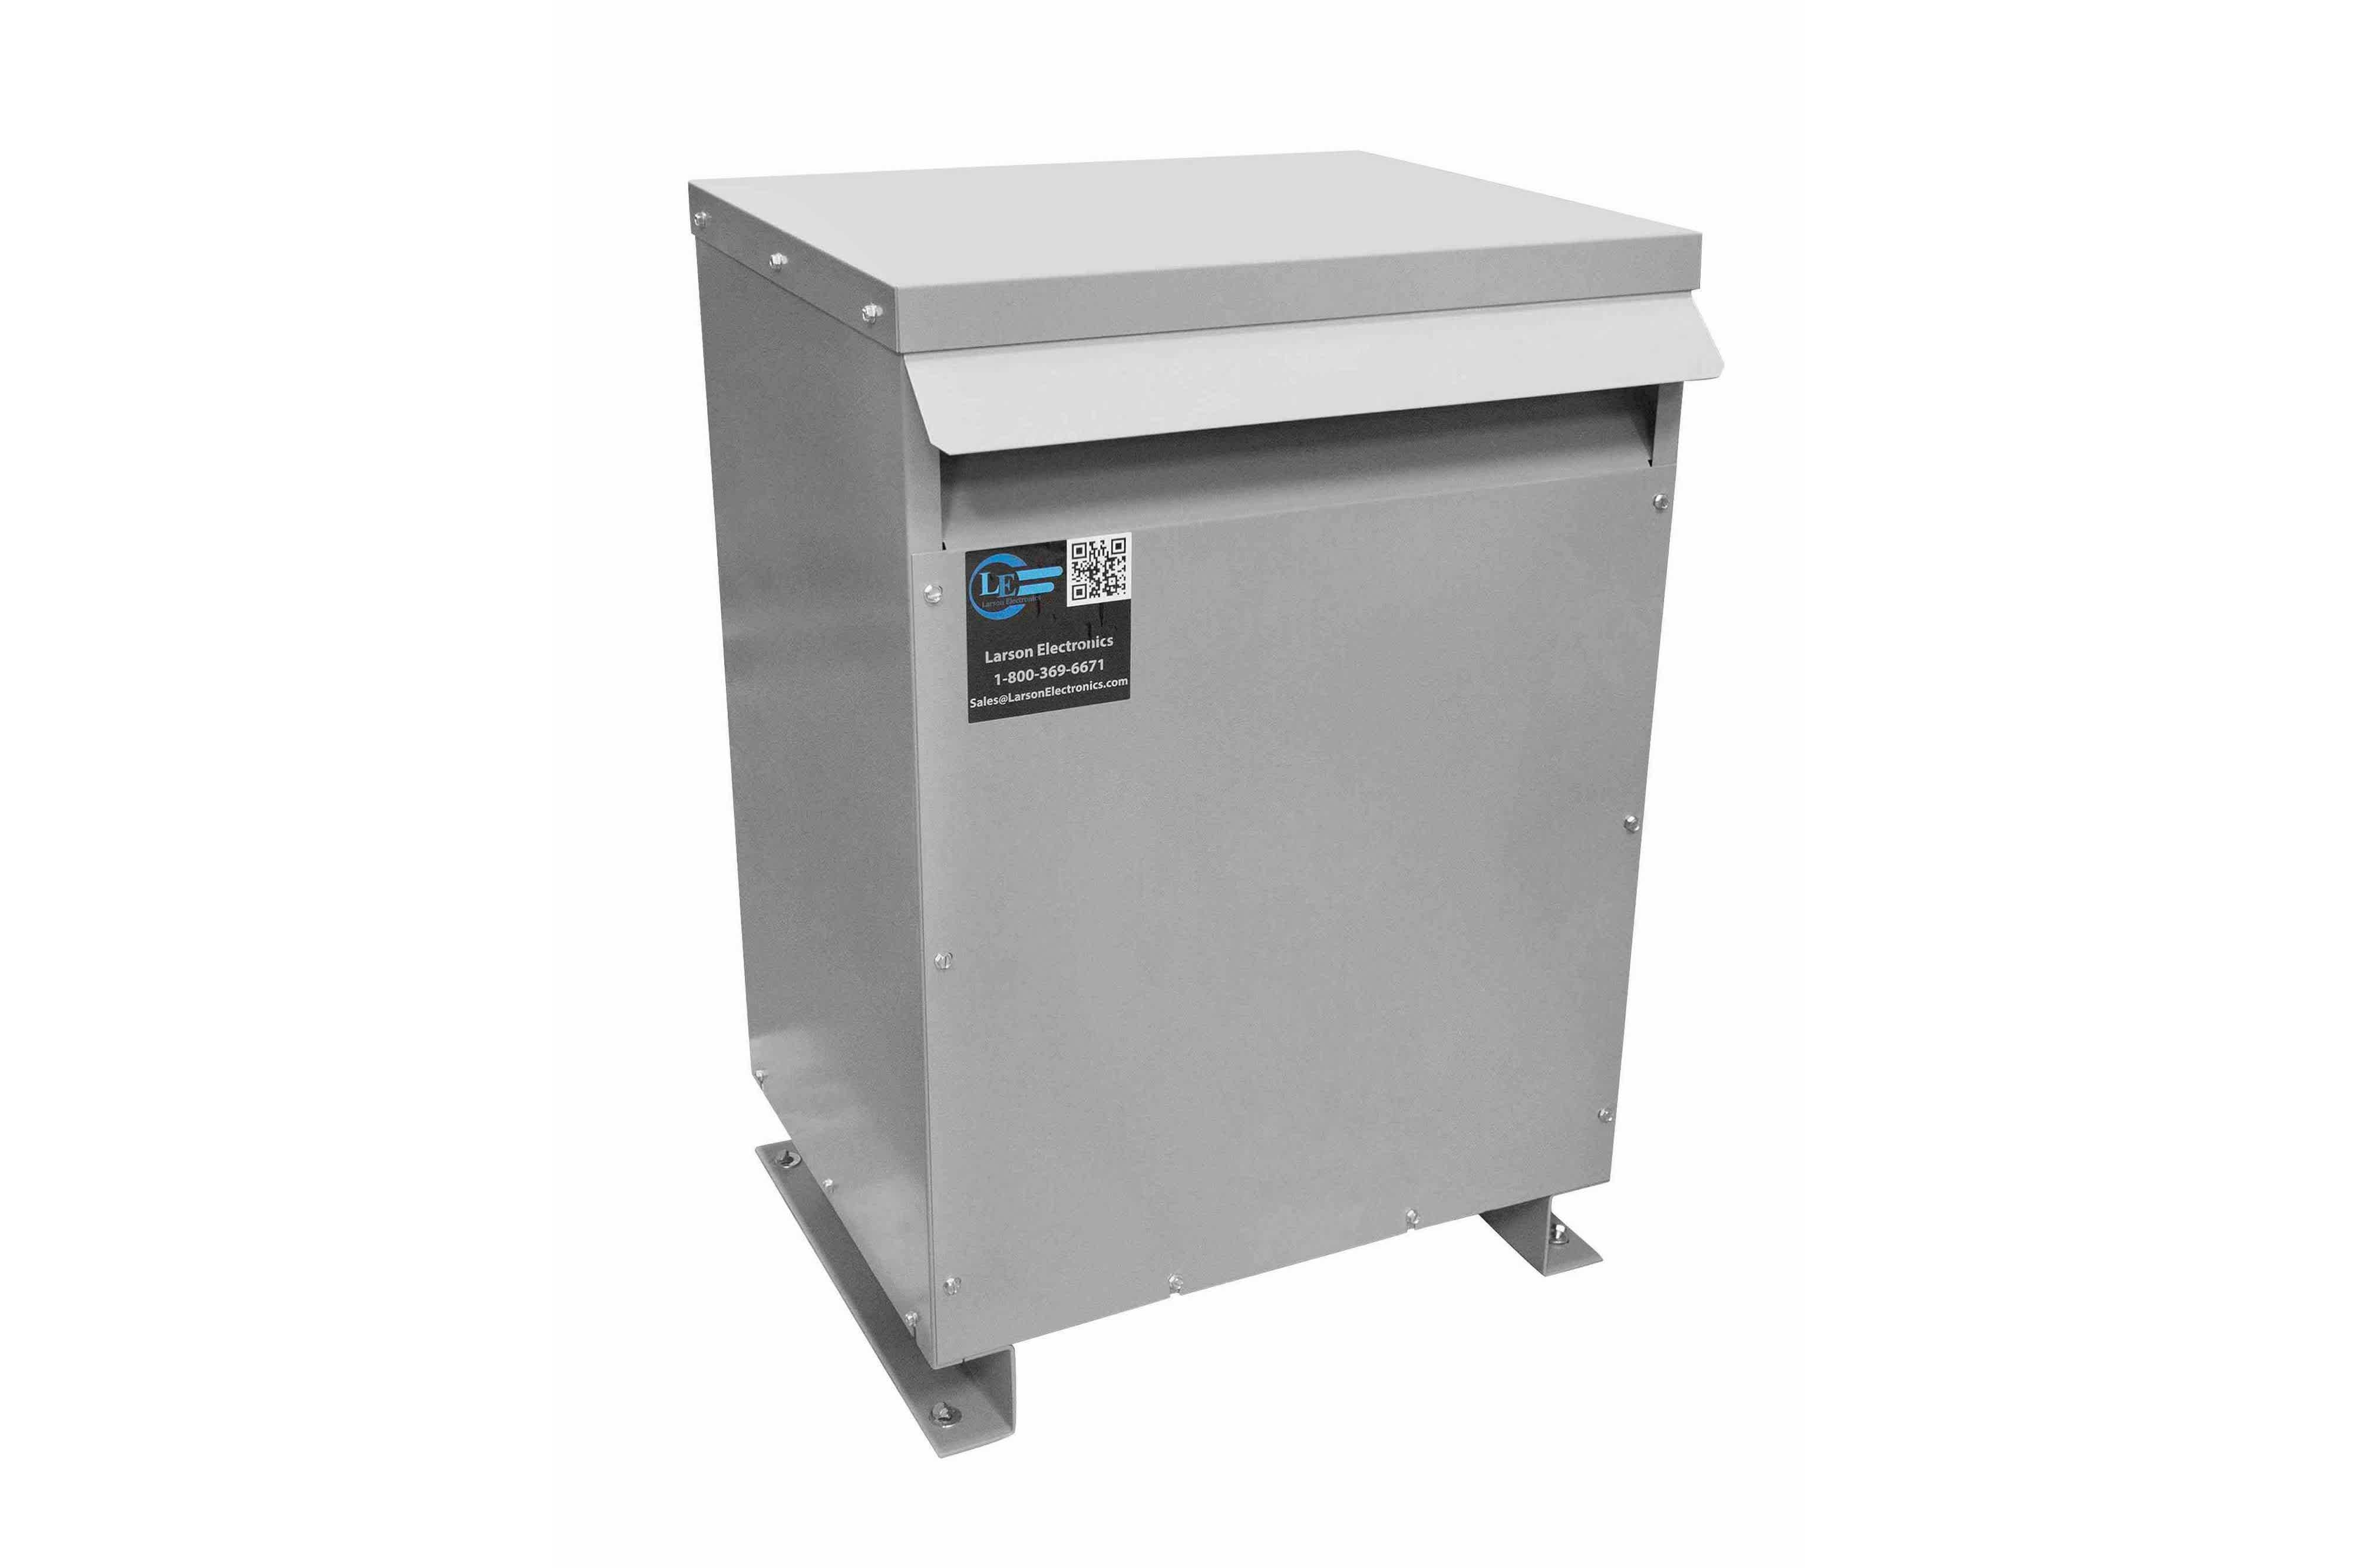 900 kVA 3PH Isolation Transformer, 240V Wye Primary, 415Y/240 Wye-N Secondary, N3R, Ventilated, 60 Hz